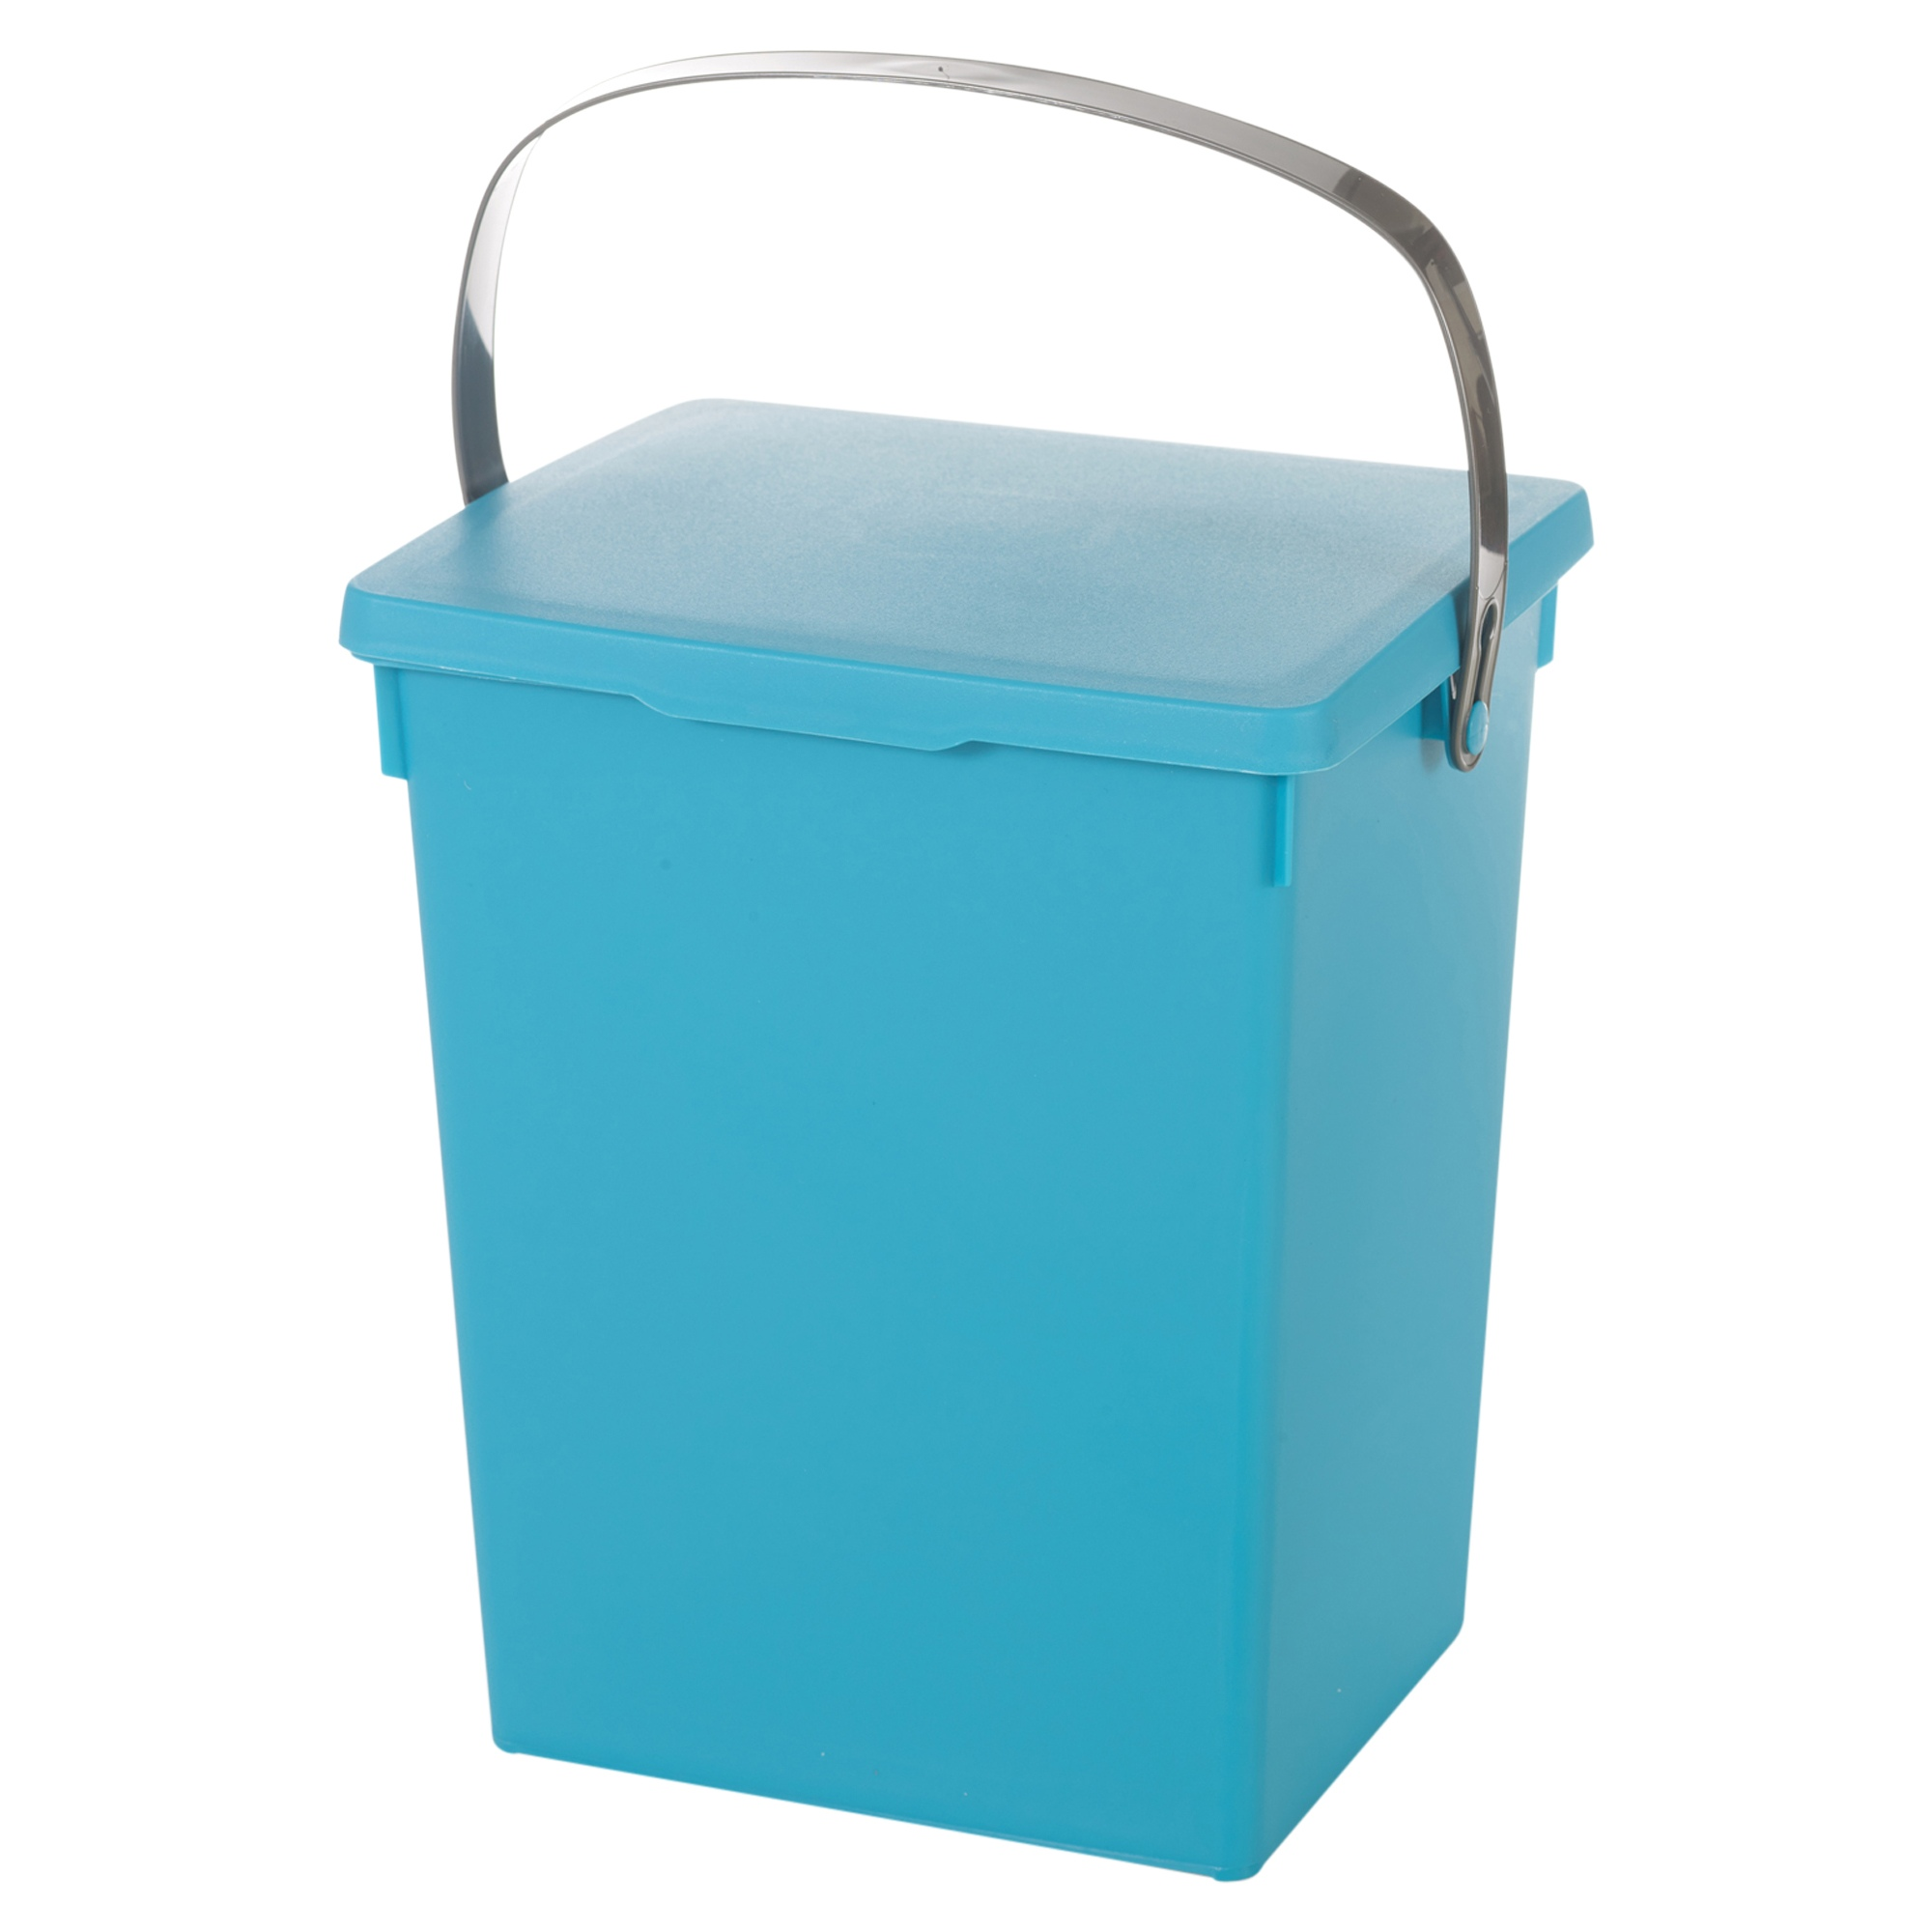 5 Litre Small Table Top Food Recycling Bin Kitchen Worktop Waste ...